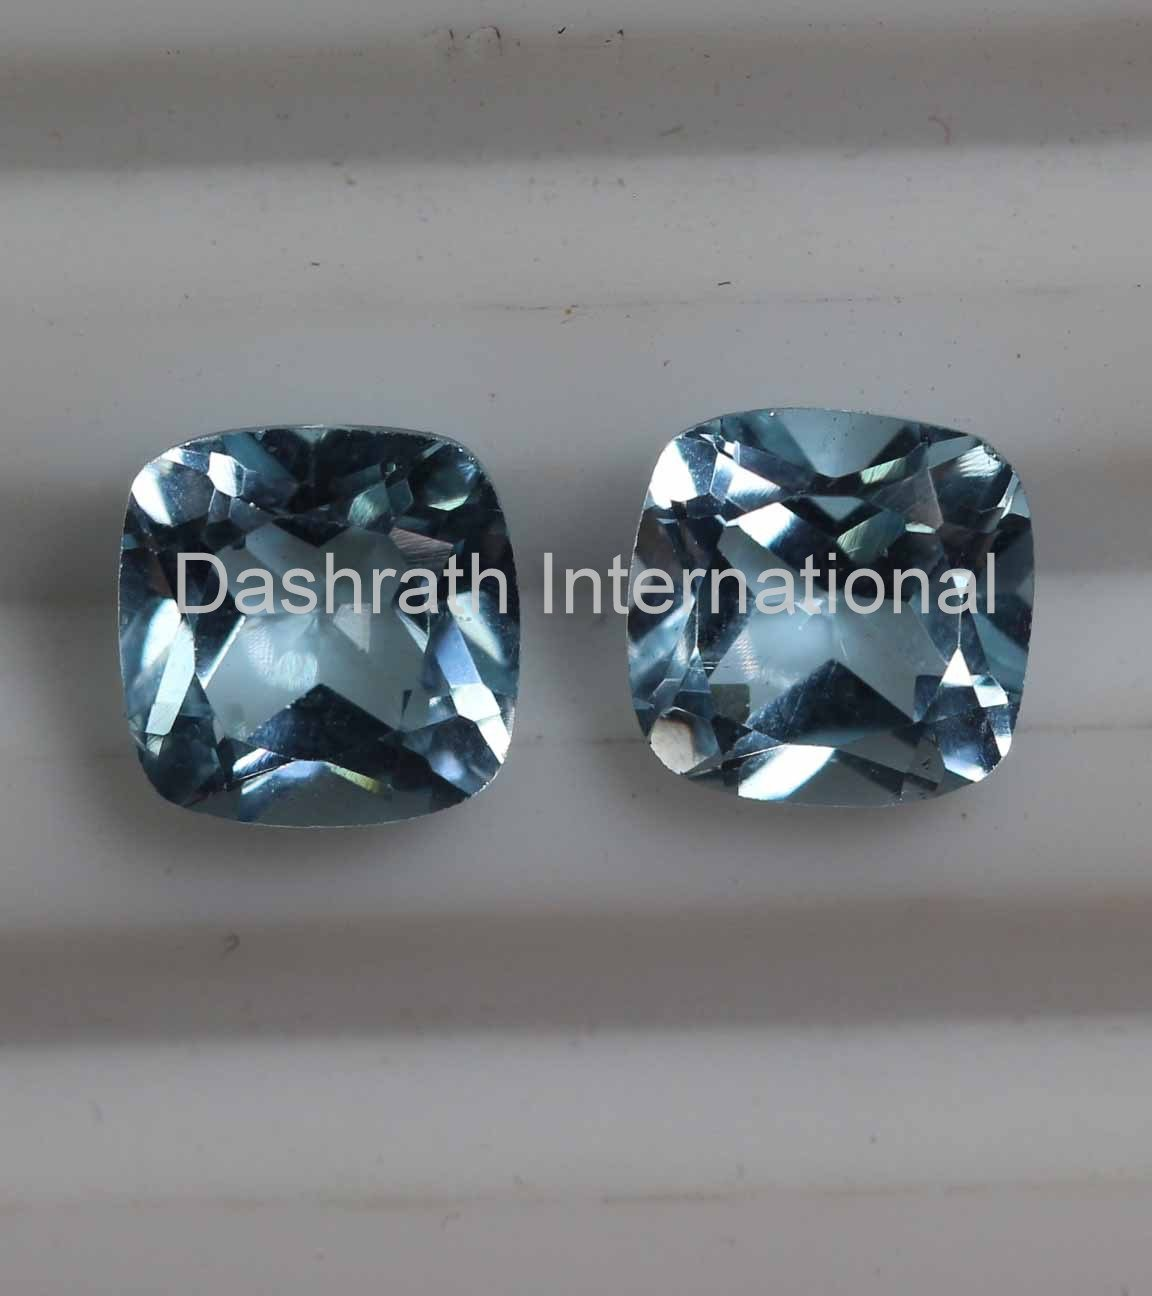 7mm Natural Sky Blue Topaz Faceted Cut Cushion 1 Piece Top Quality Loose Gemstone